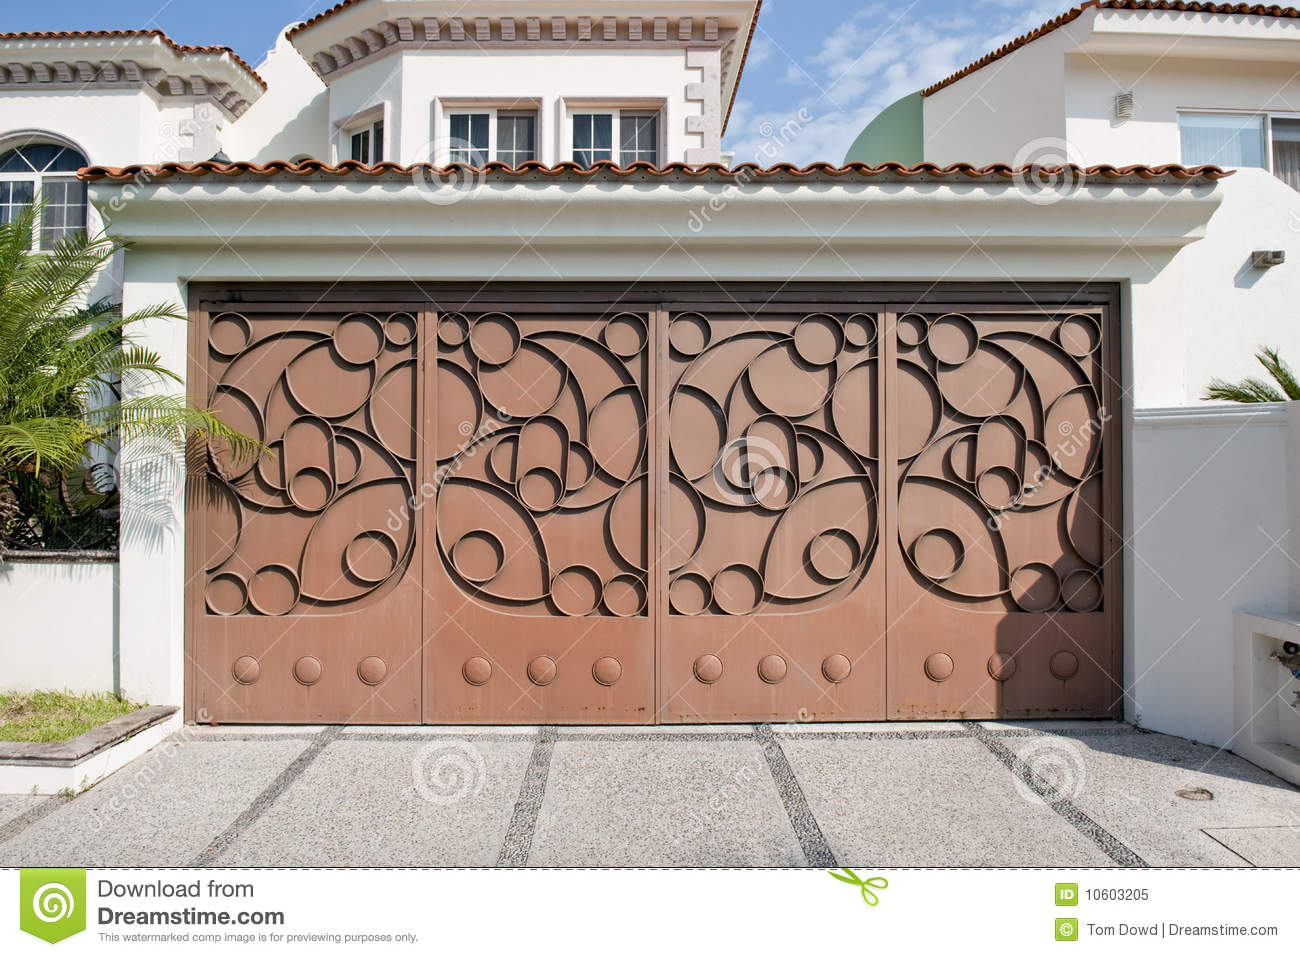 957 #375F94 Custom Garage Door Royalty Free Stock Photo Image: 10603205 wallpaper Custom Garage Doors 38351300